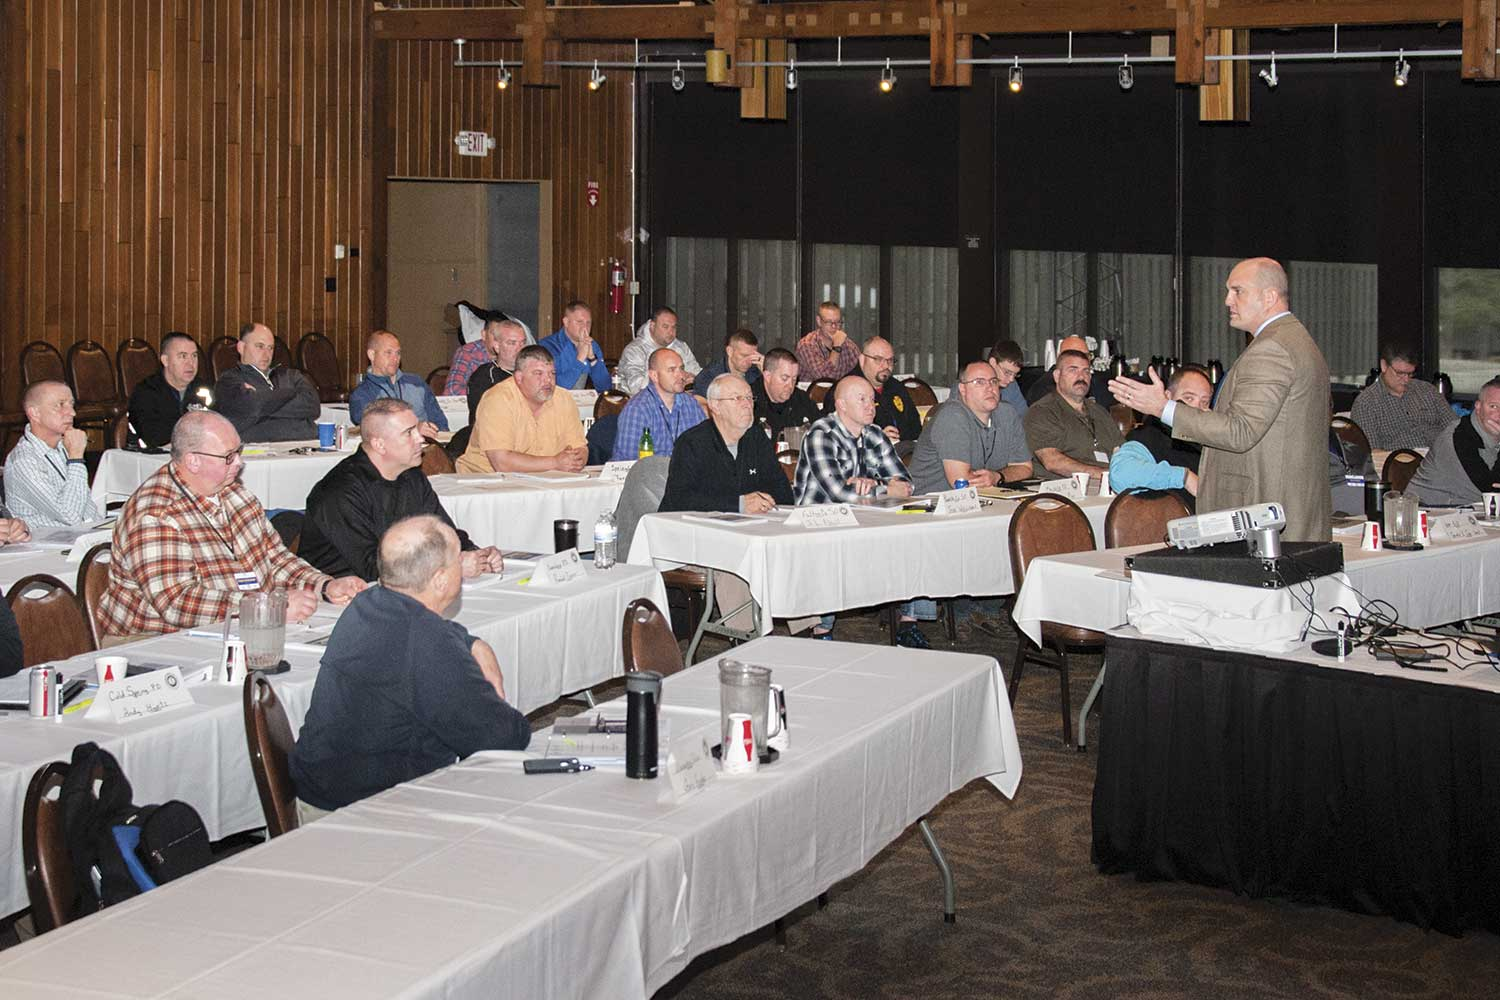 Mid-level officers from across the state attended the recent CLIME training in Barren River, which included the presentation about school safety. (Photo by Jim Robertson)